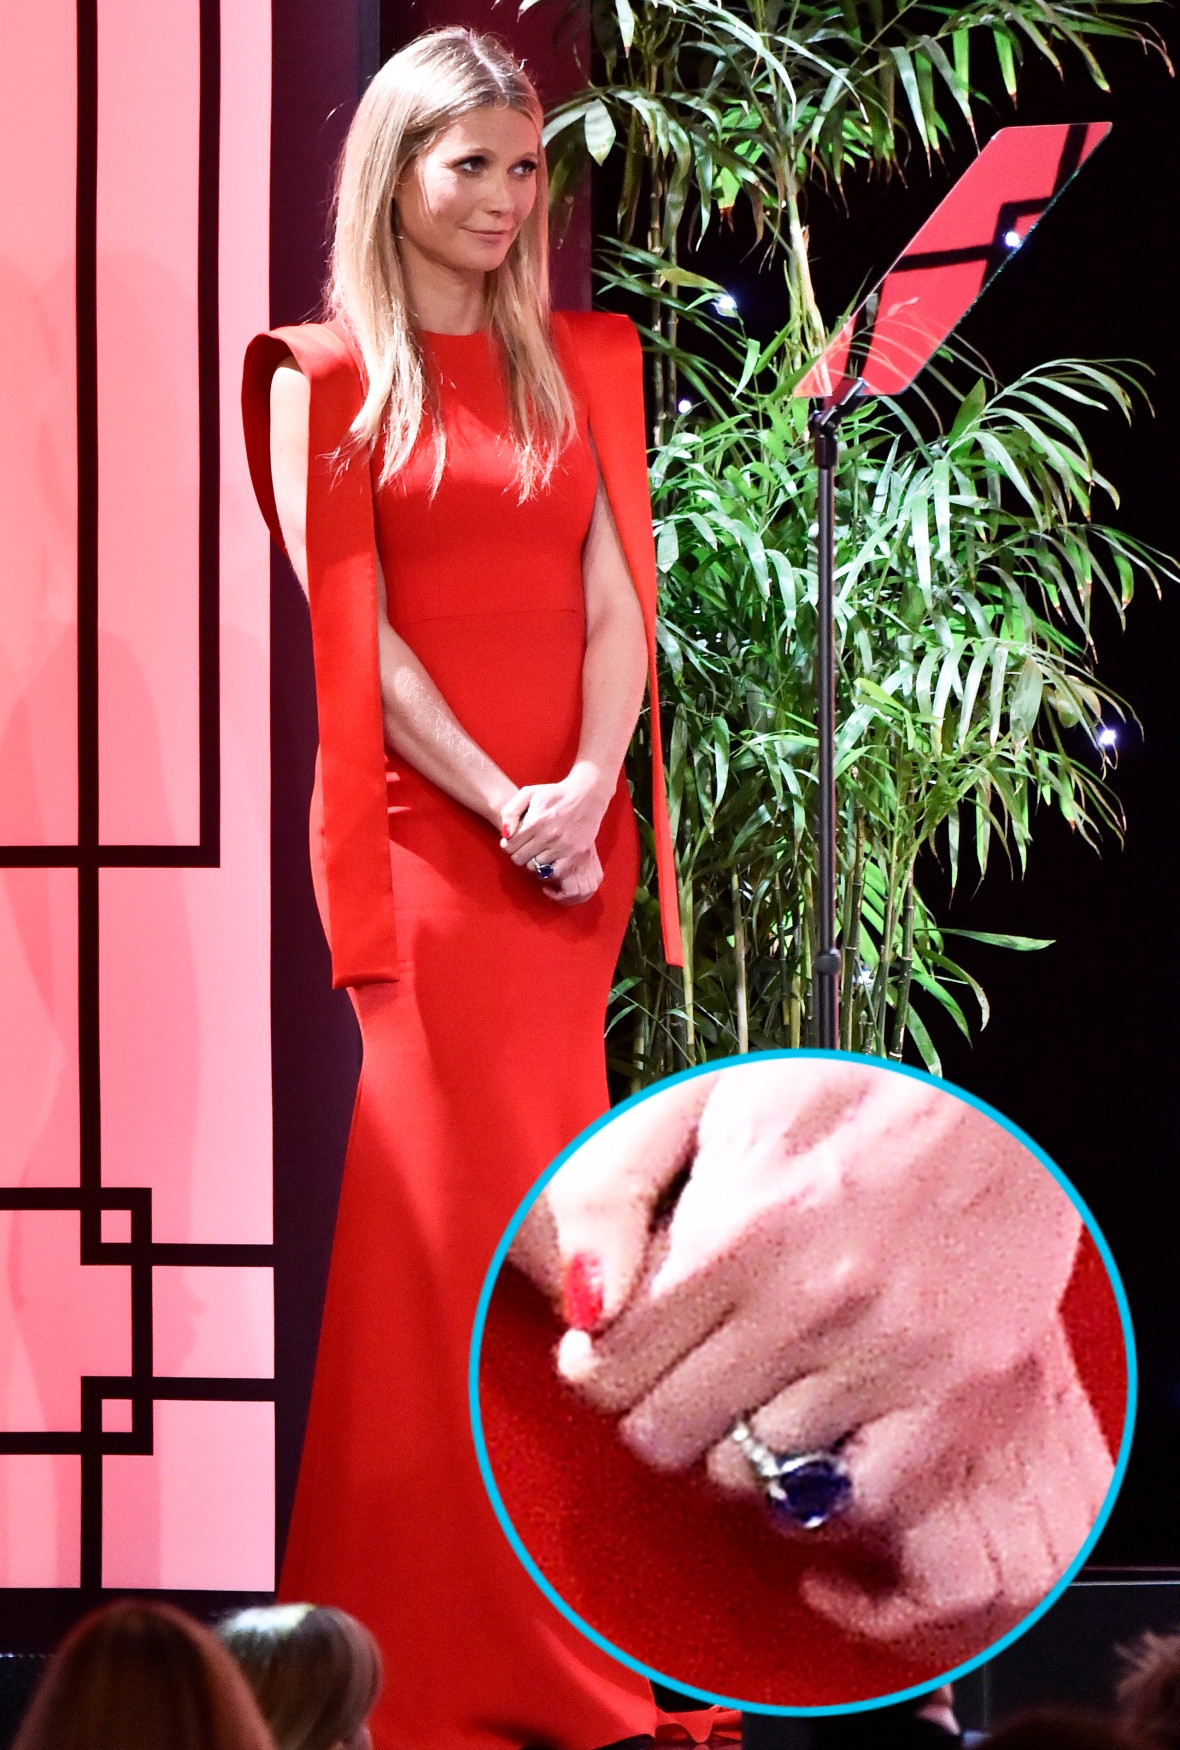 gwyneth paltrow engagement ring getty images